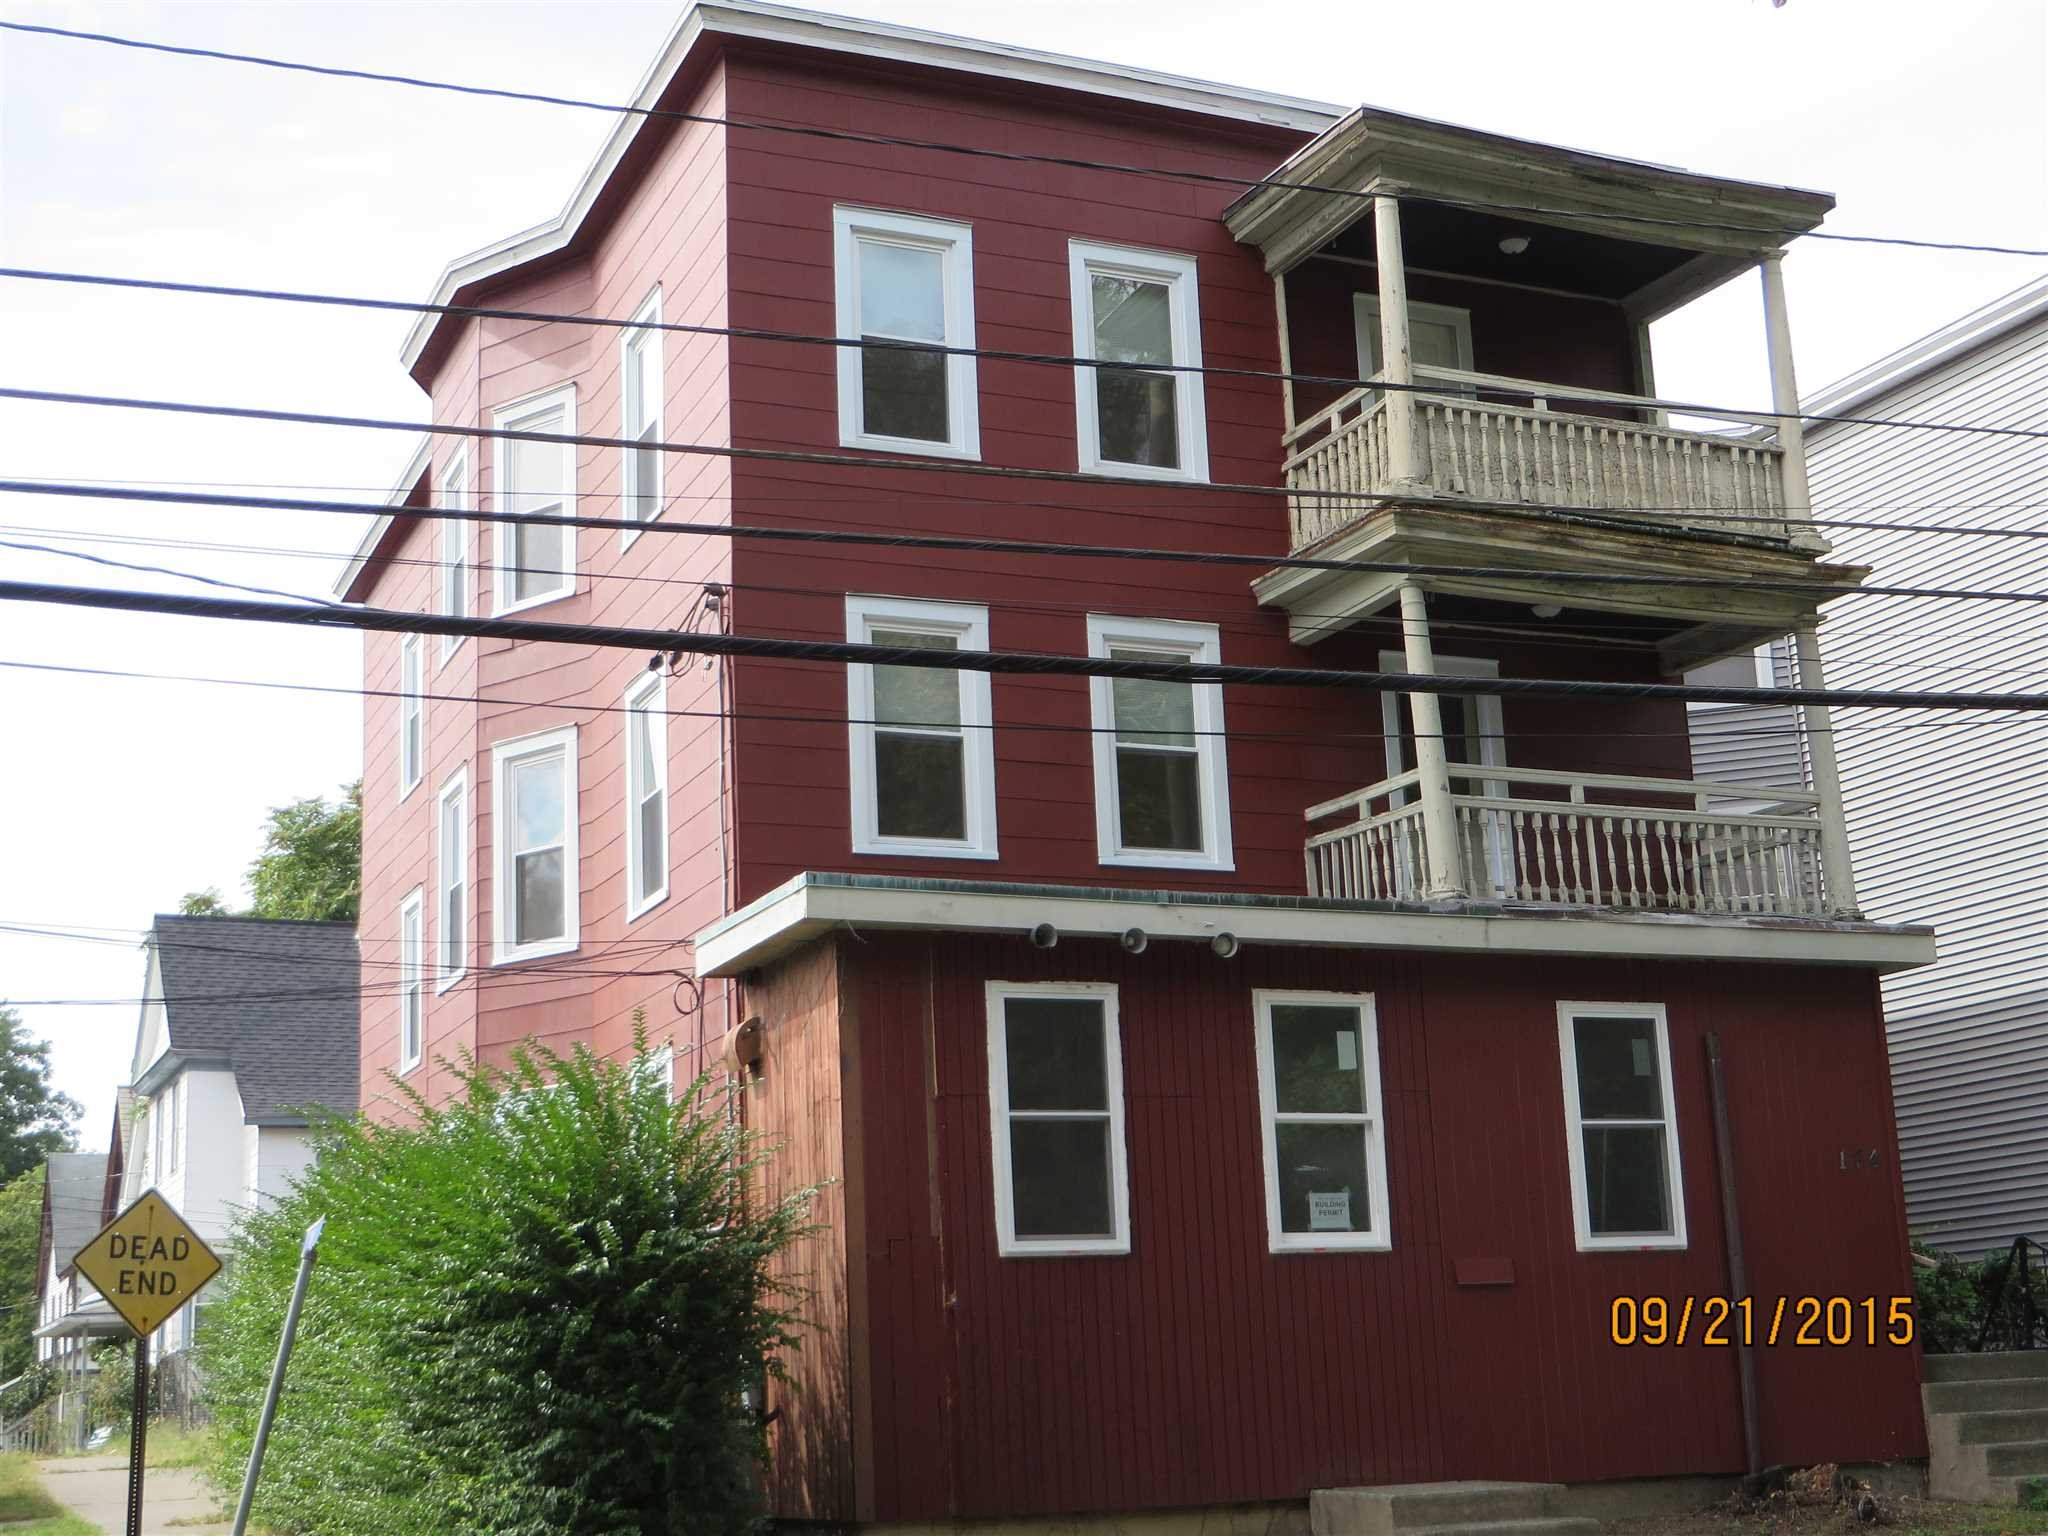 Single Family Home for Rent at 174 SOUTH AVENUE 174 SOUTH AVENUE Poughkeepsie, New York 12601 United States